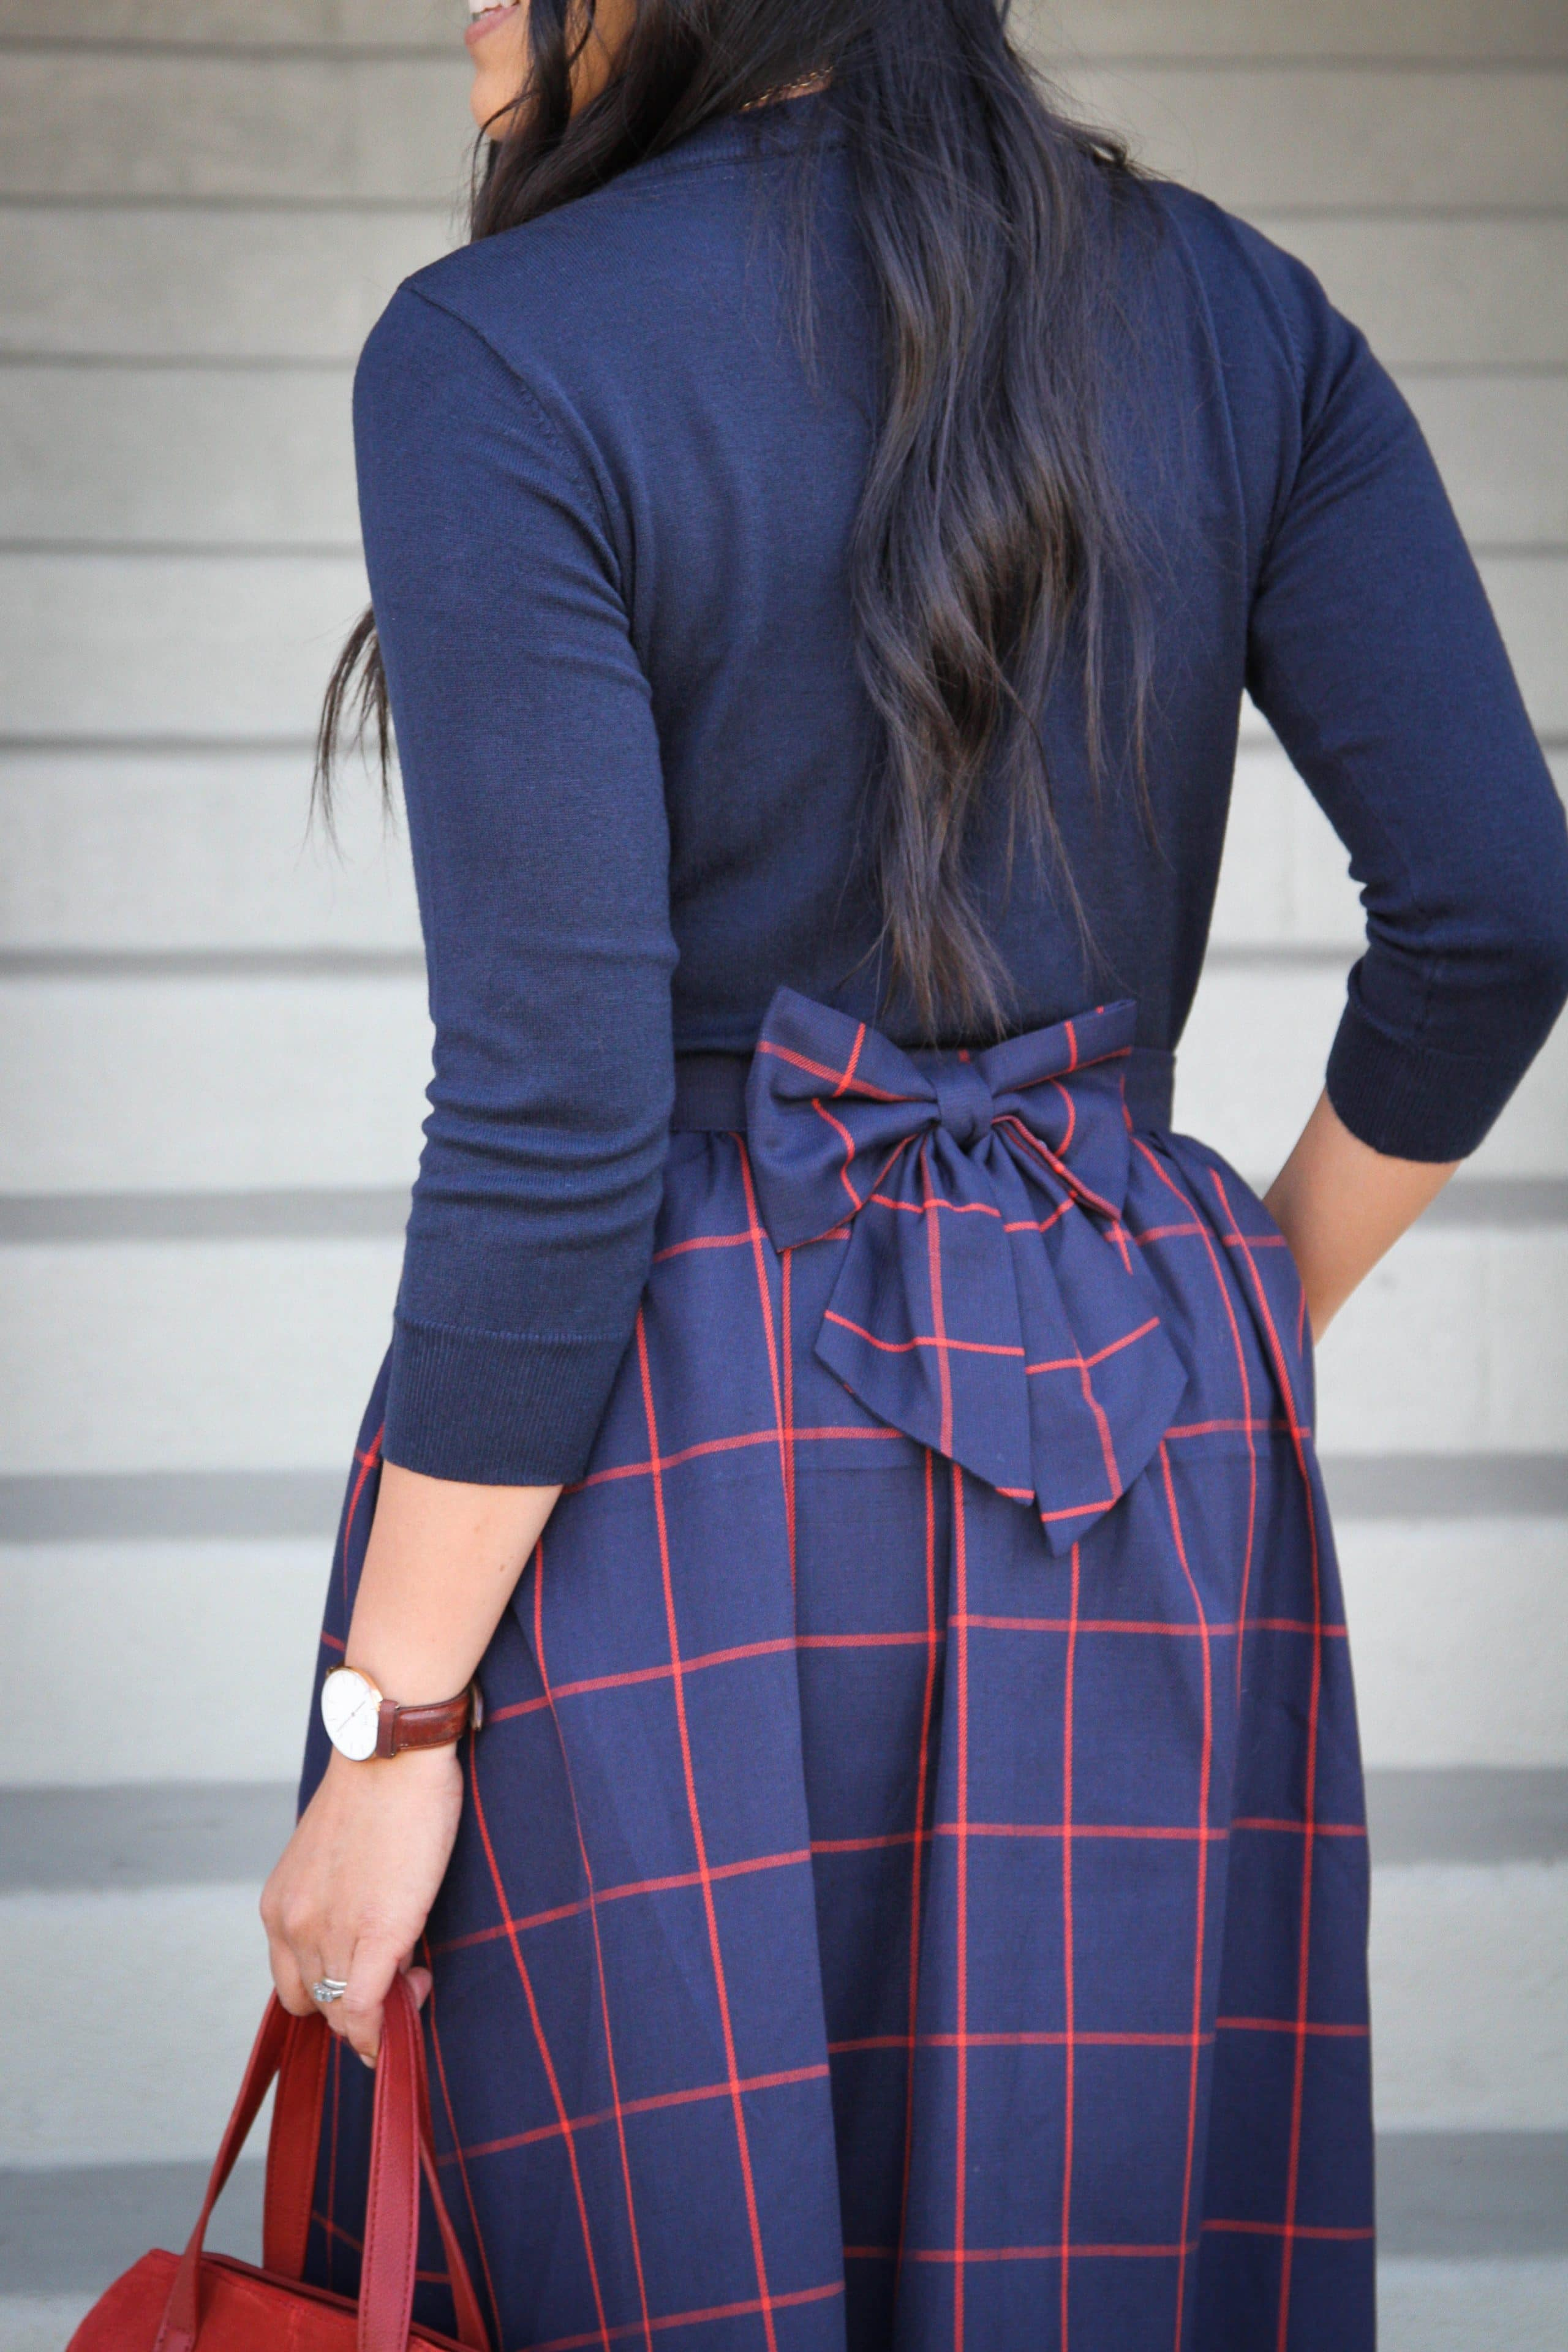 Navy Sweater + Bow detail back of skirt